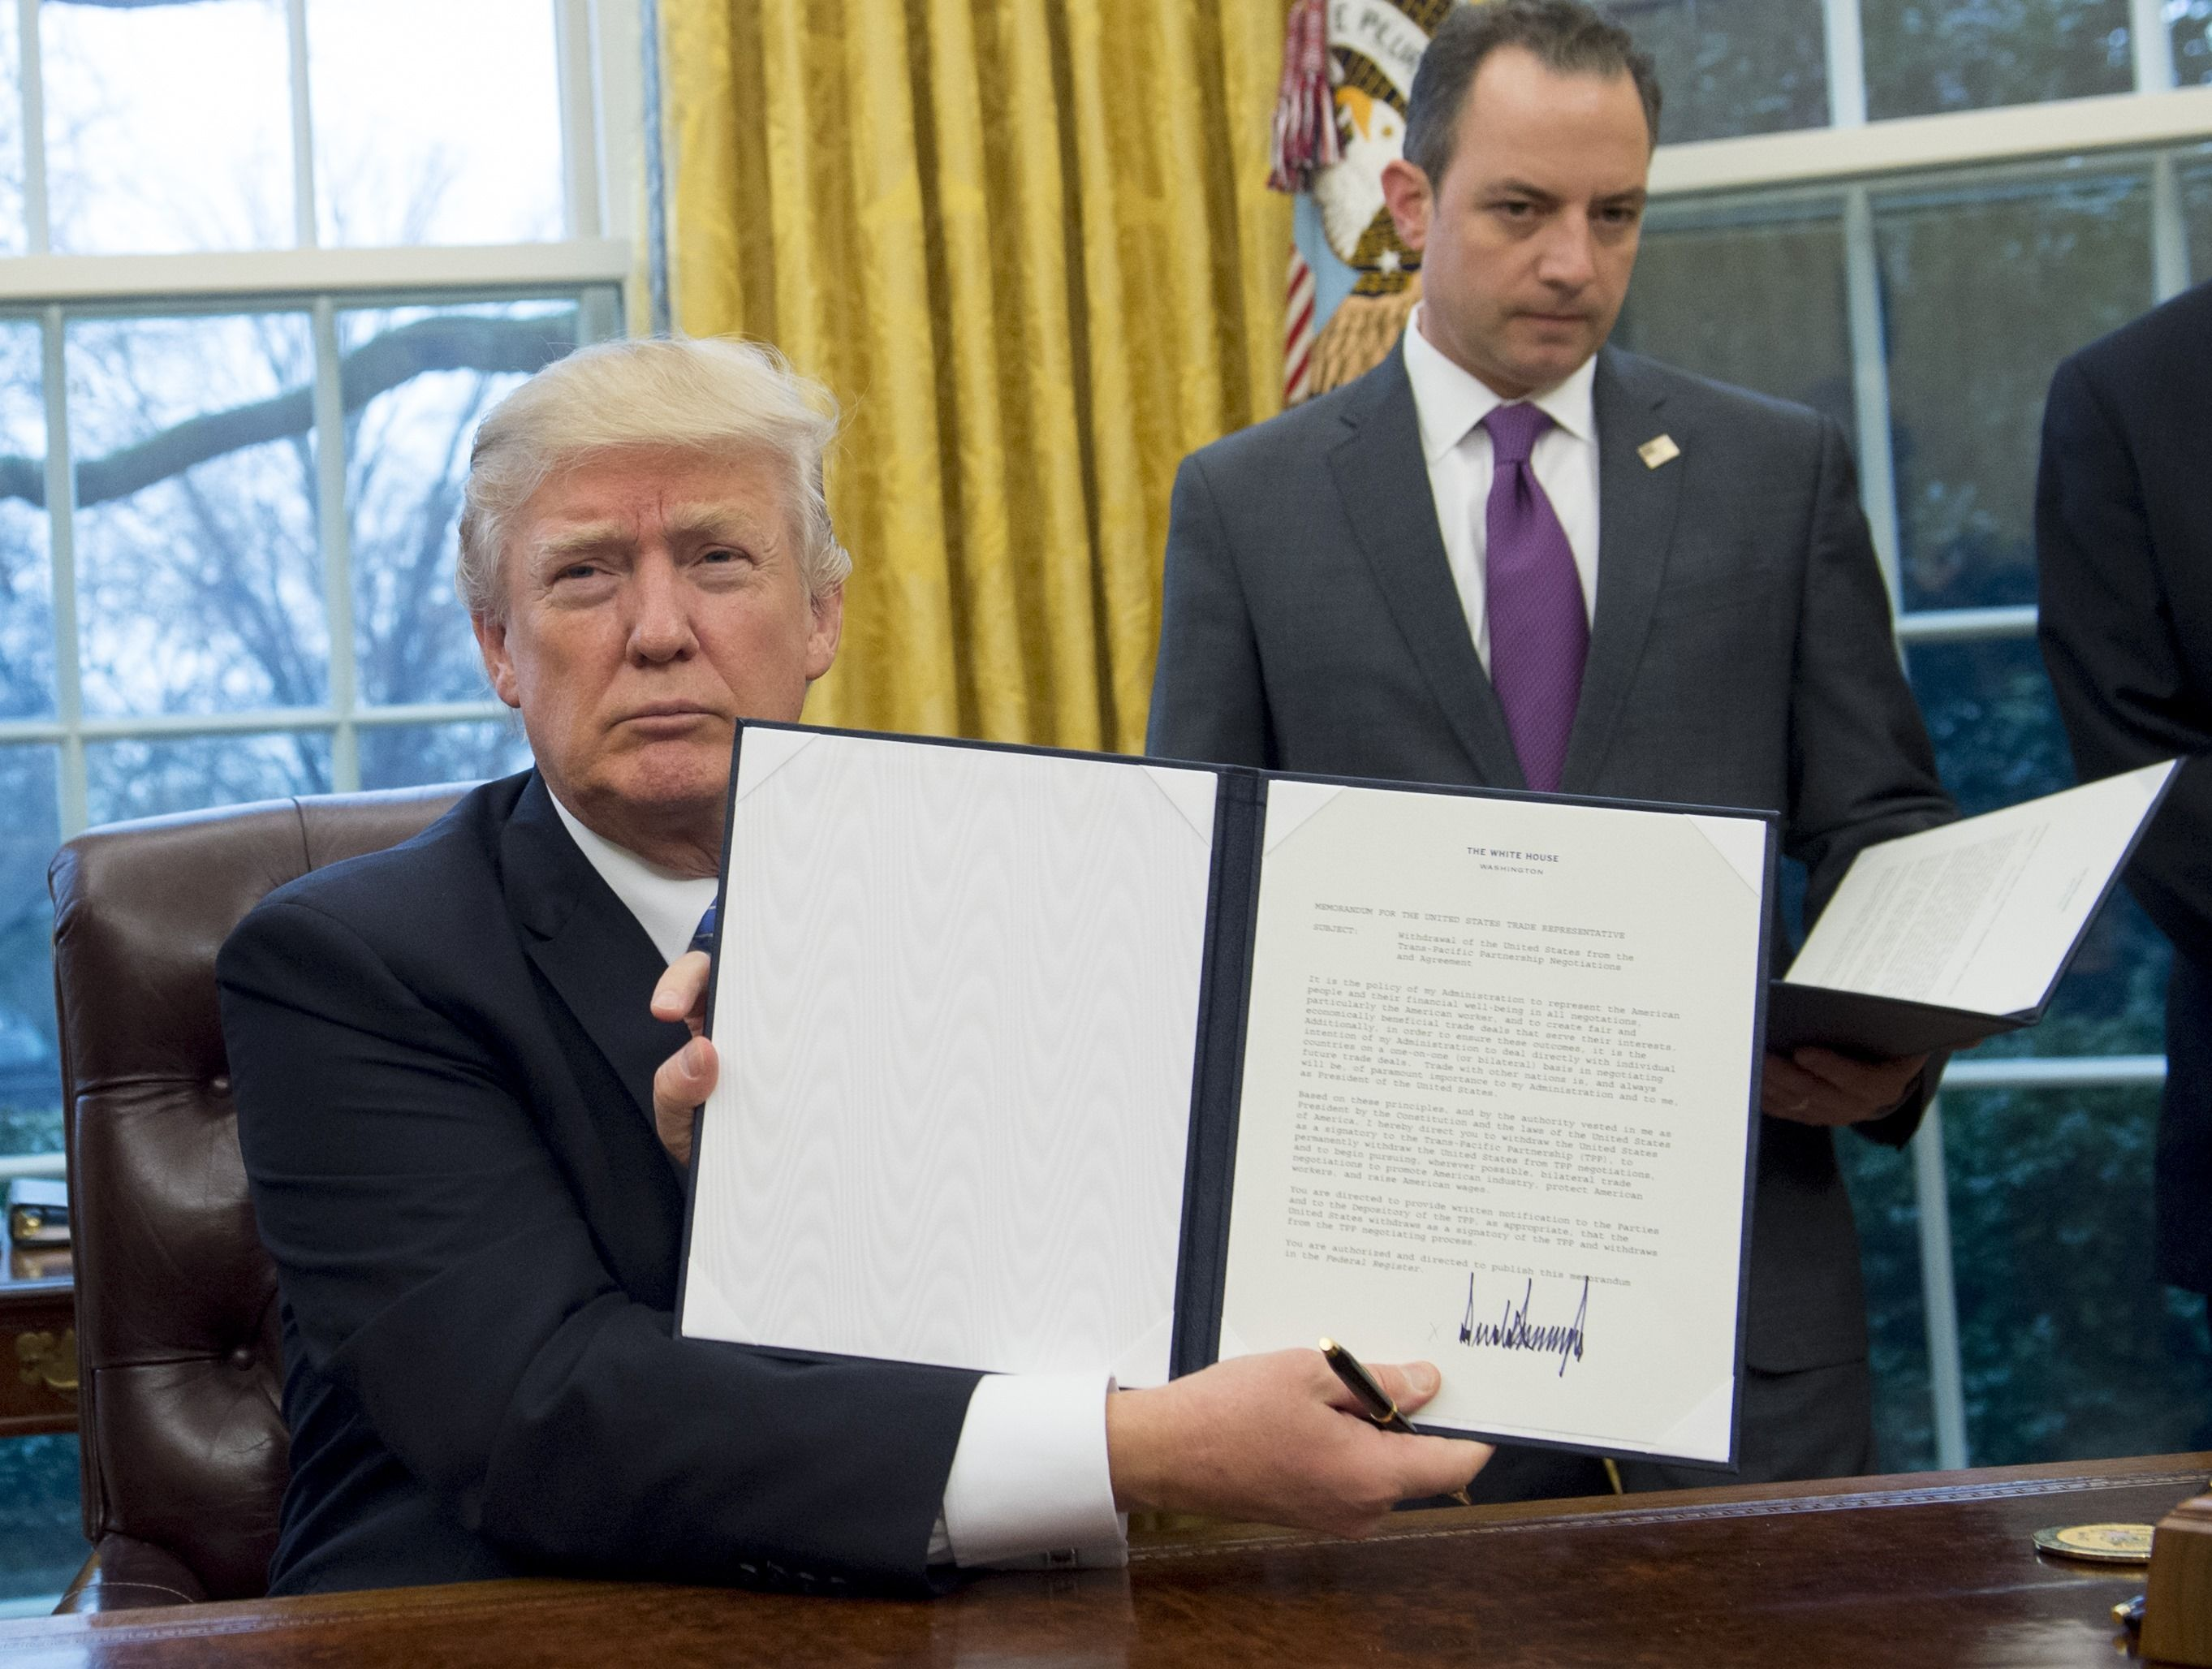 Fedex Jobs New Psbattle Trump Signs Memo To Leave Tpp Trade Pact  Funny Photoshop .